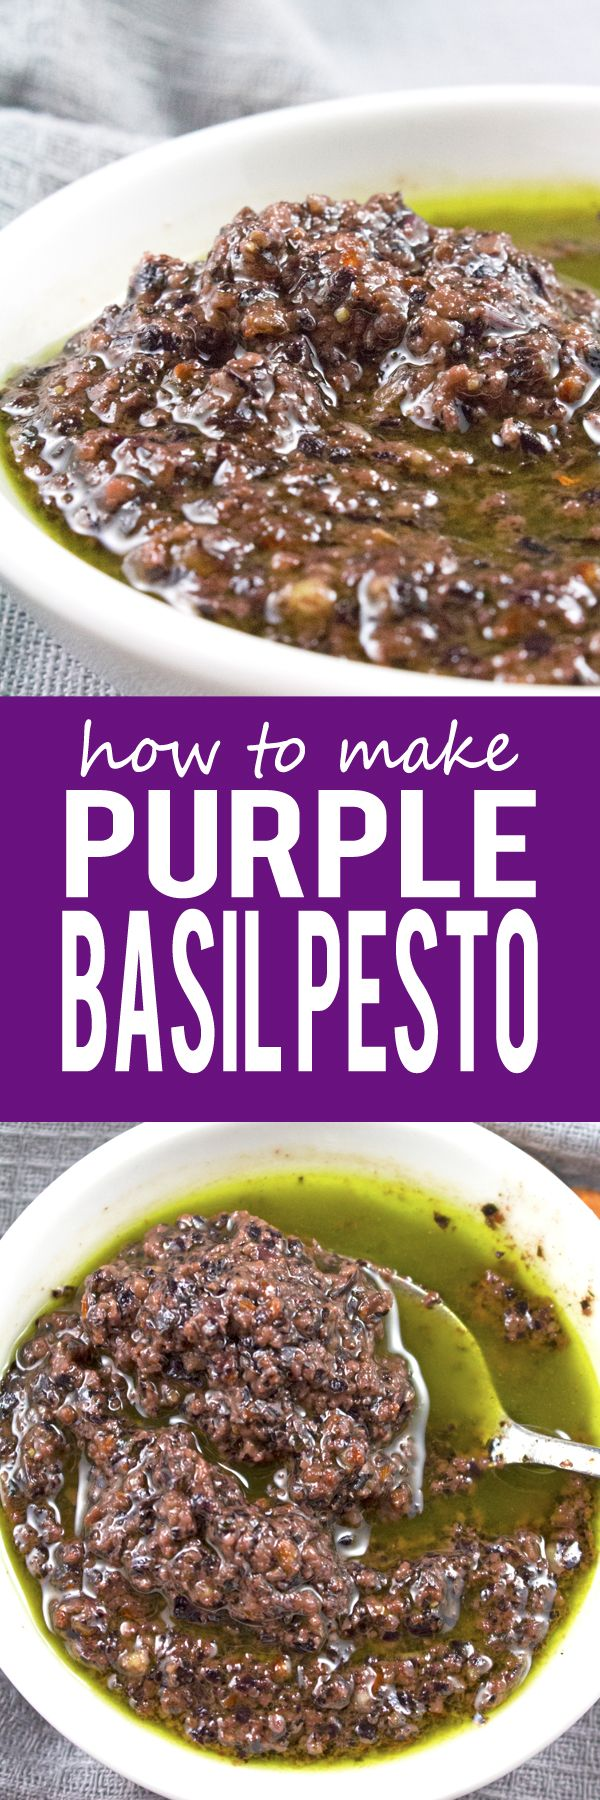 How To Make Purple Basil Pesto - AMAZING homemade basil pesto that is super easy to make (only 10 mins)! You'll never buy pesto from the store again!! TRY THIS!